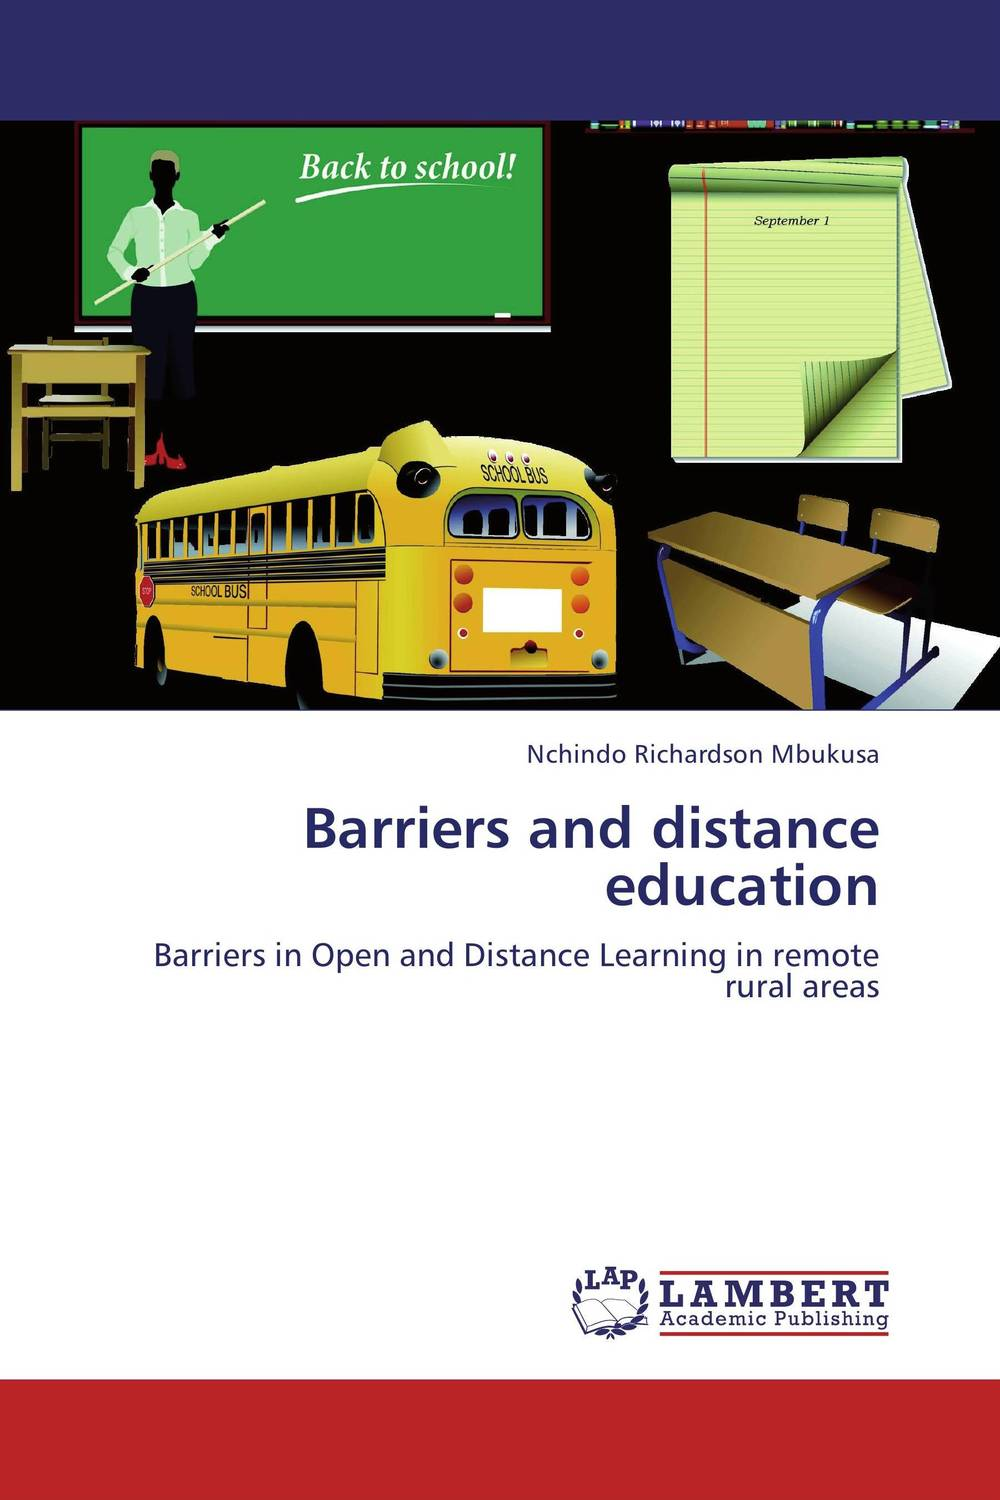 Barriers and distance education